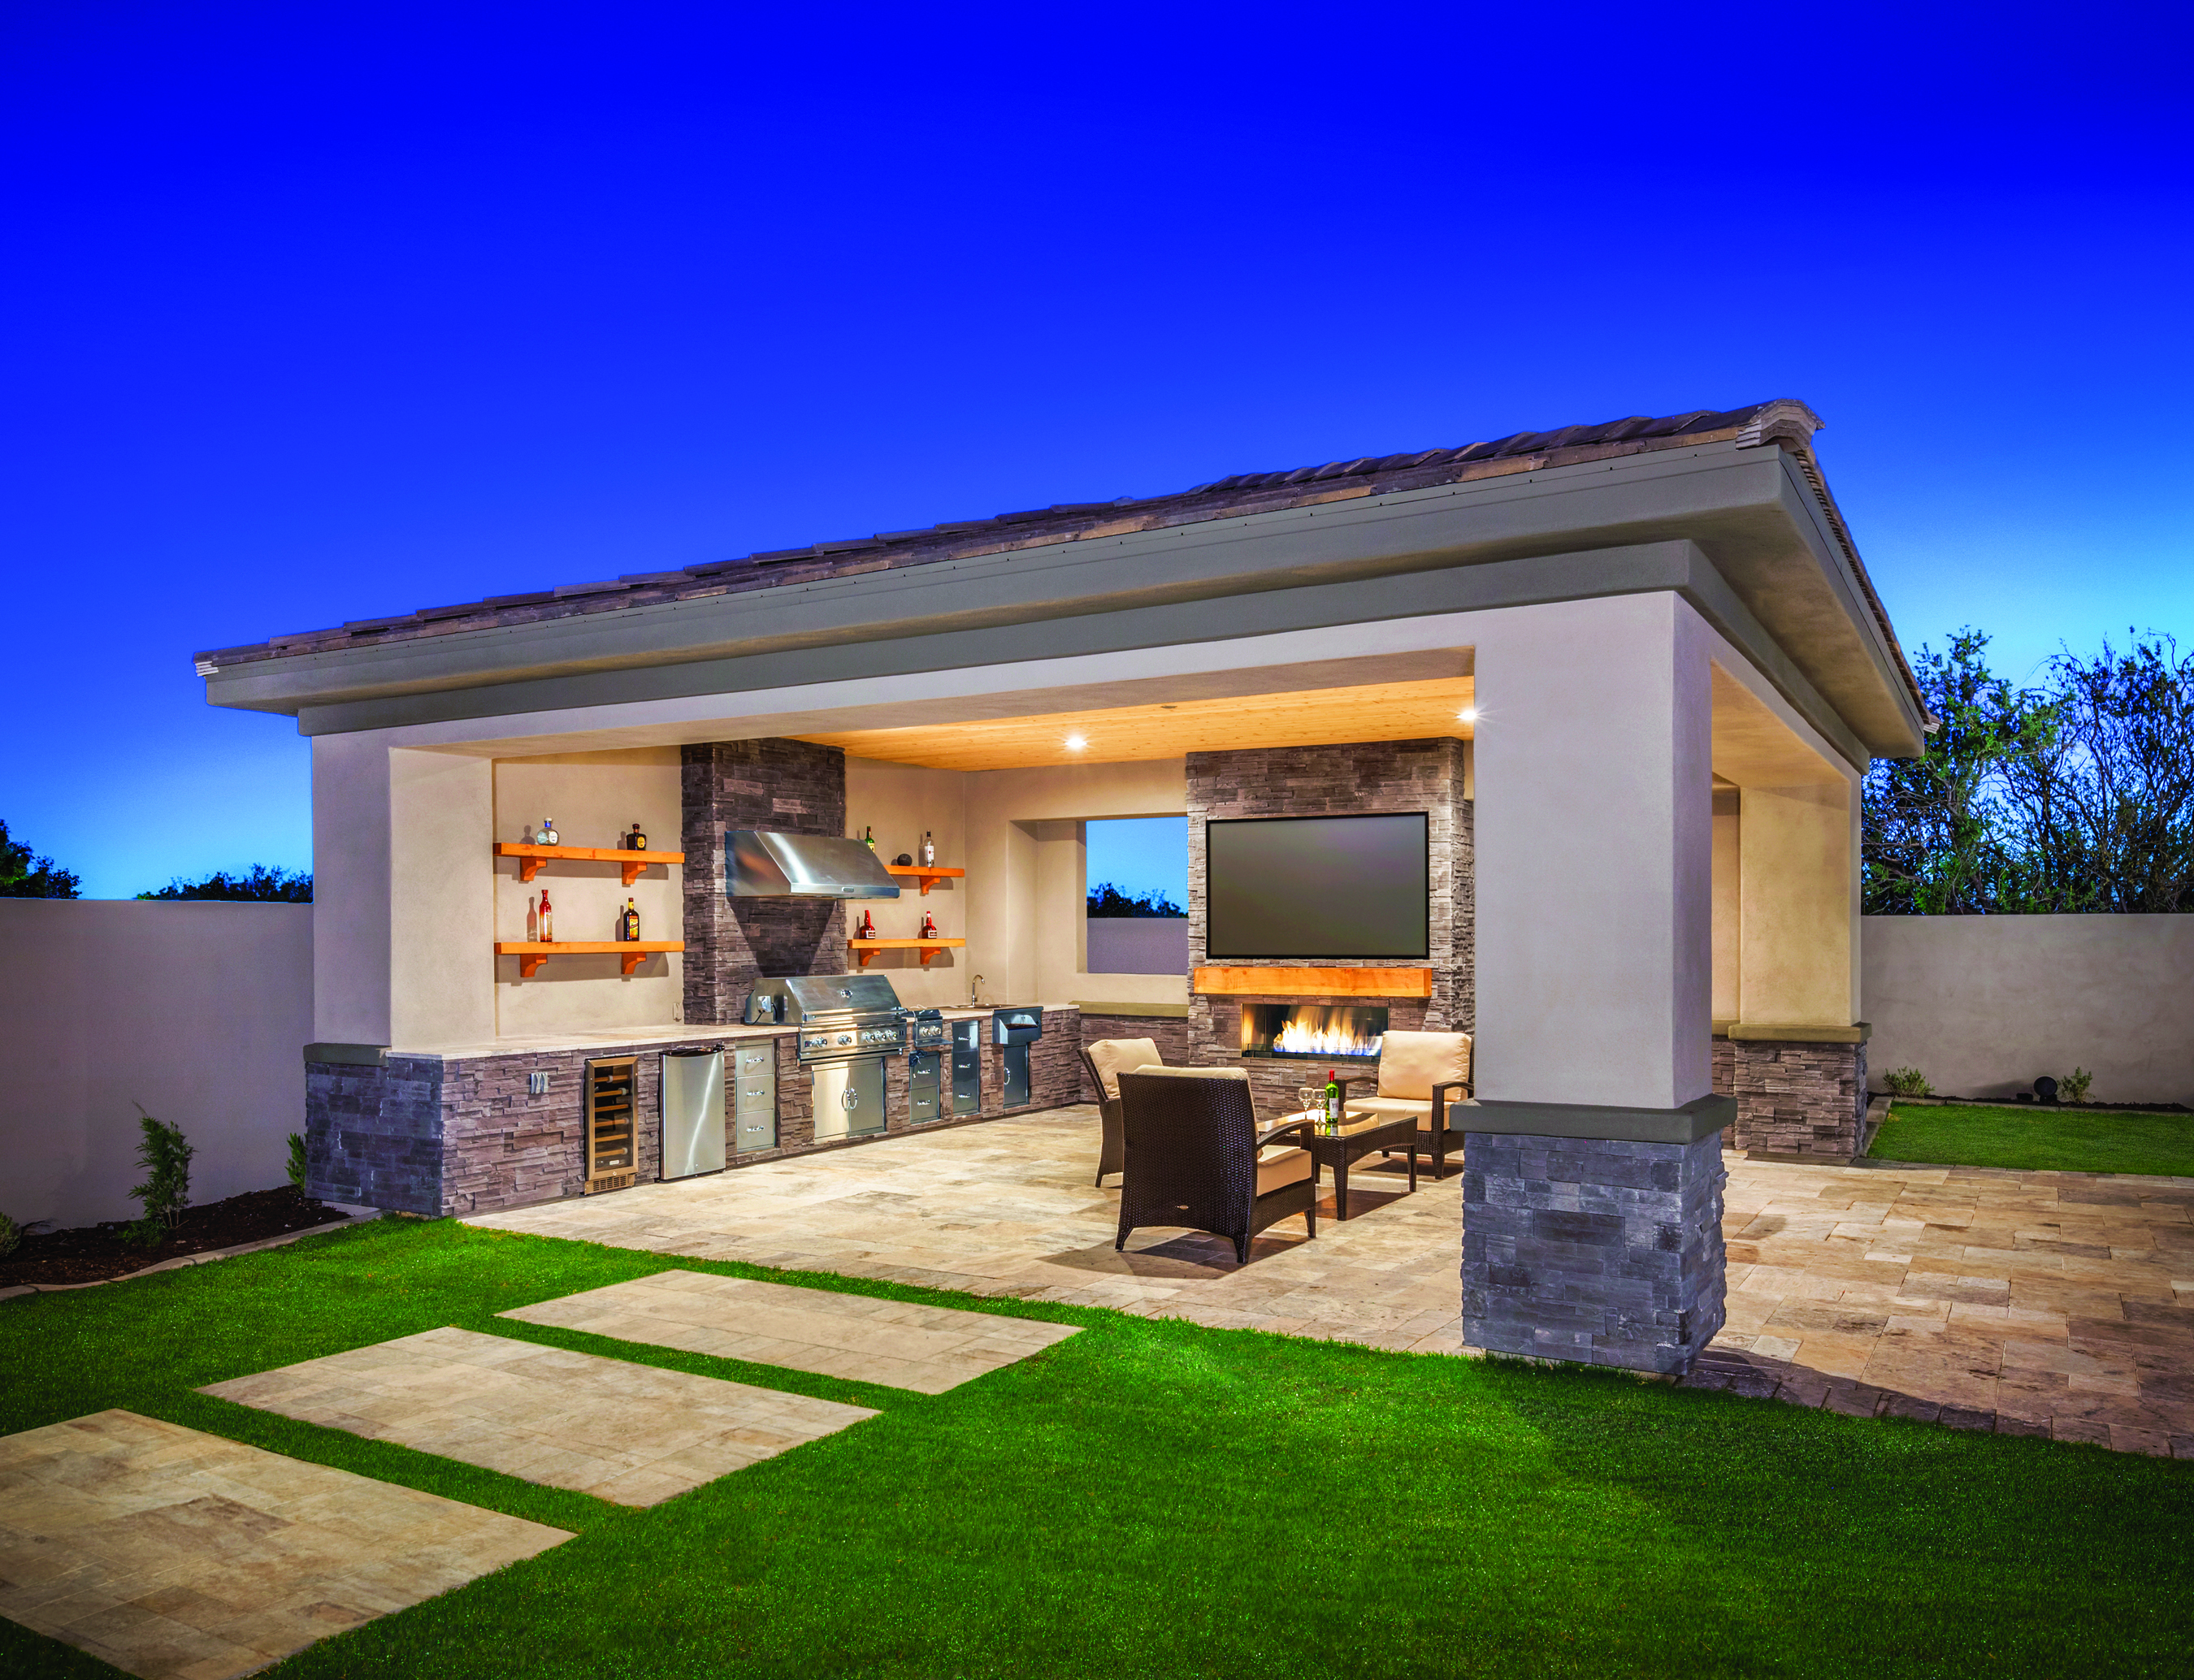 The Popularity Of Outdoor Kitchens Has Spread Far Beyond Warm Regions  (Photo: Toll Brothers). Design And Layout